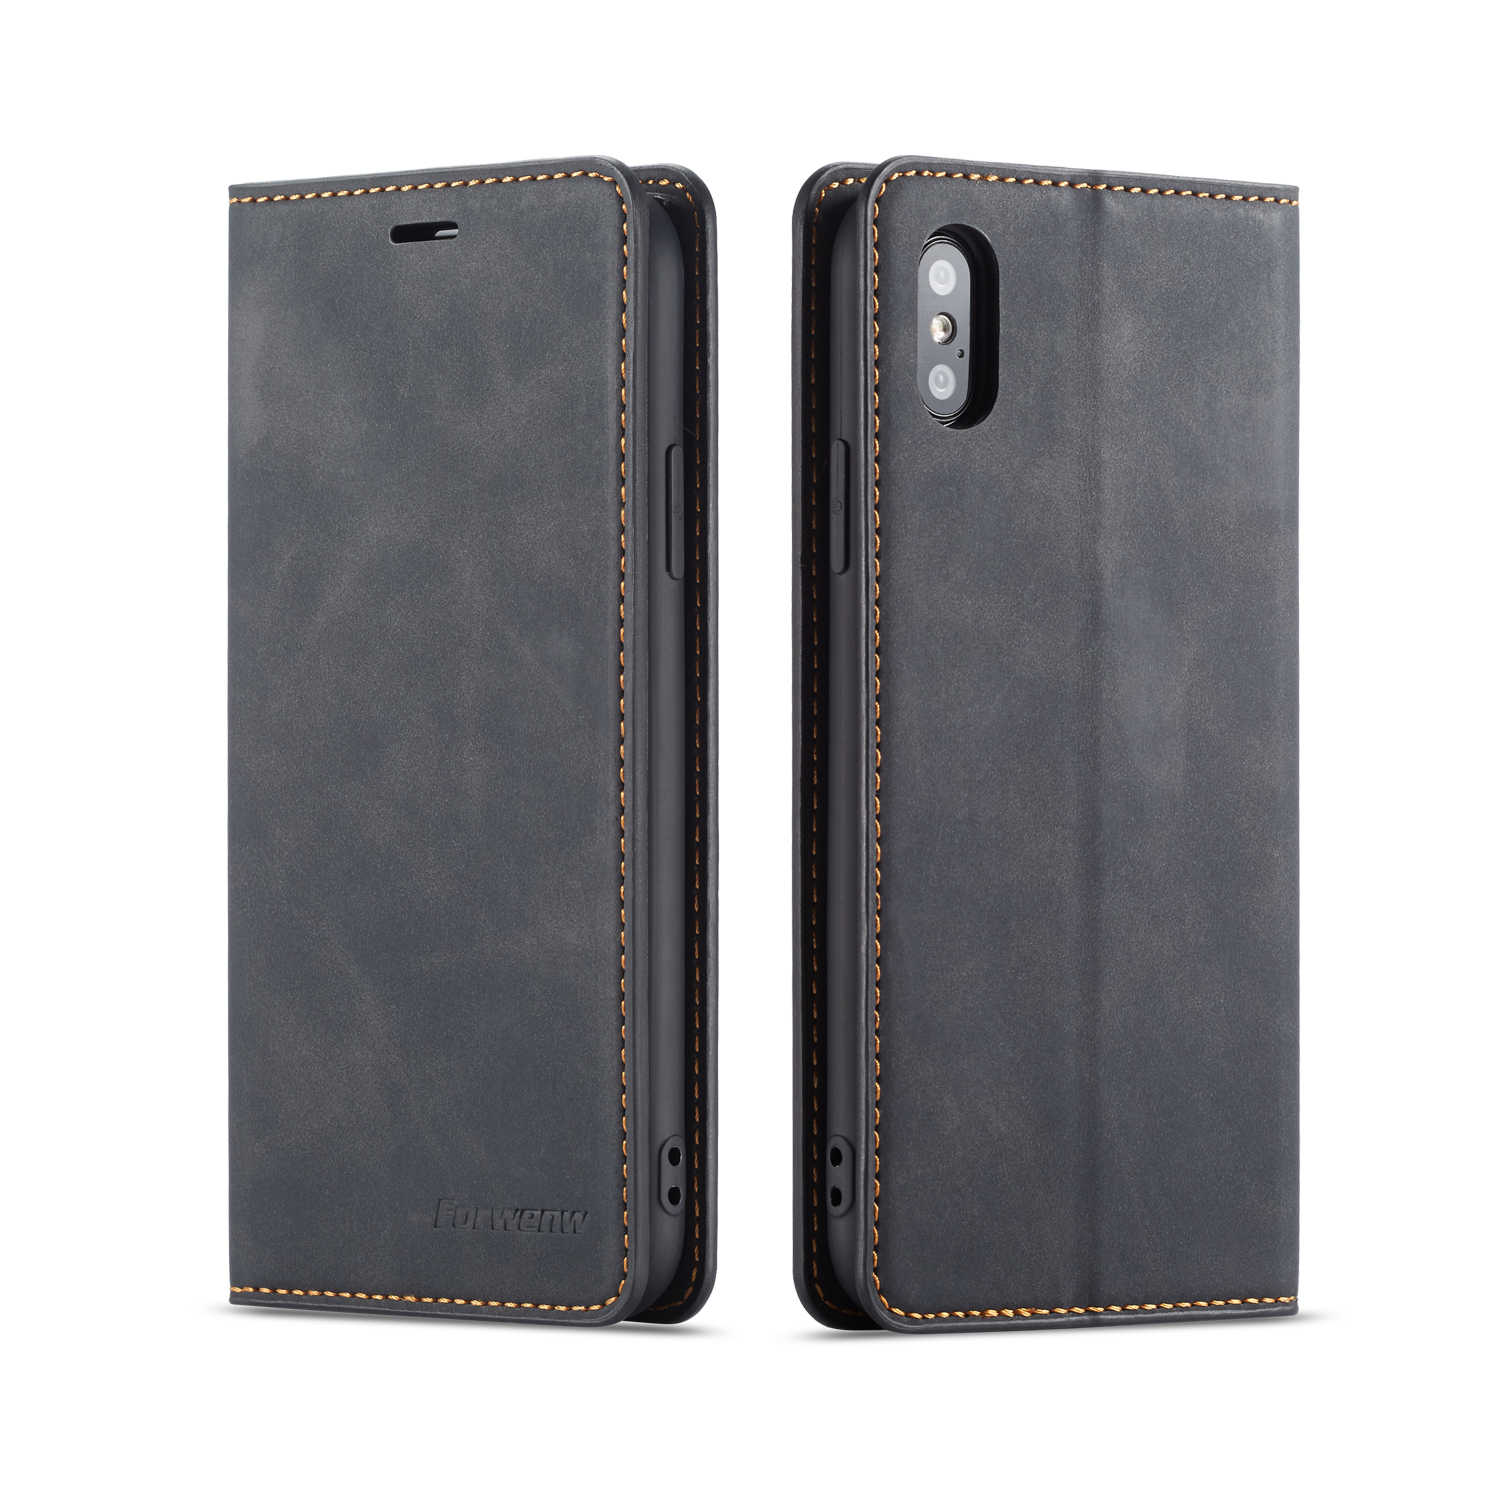 PU Leather Wallet Flip Credit Card Cover Bag for Iphone X XR XS MAX 8 7 6 6S Plus Samsung Galaxy NOTE 9 8 S9 S8 Plus Stand Case